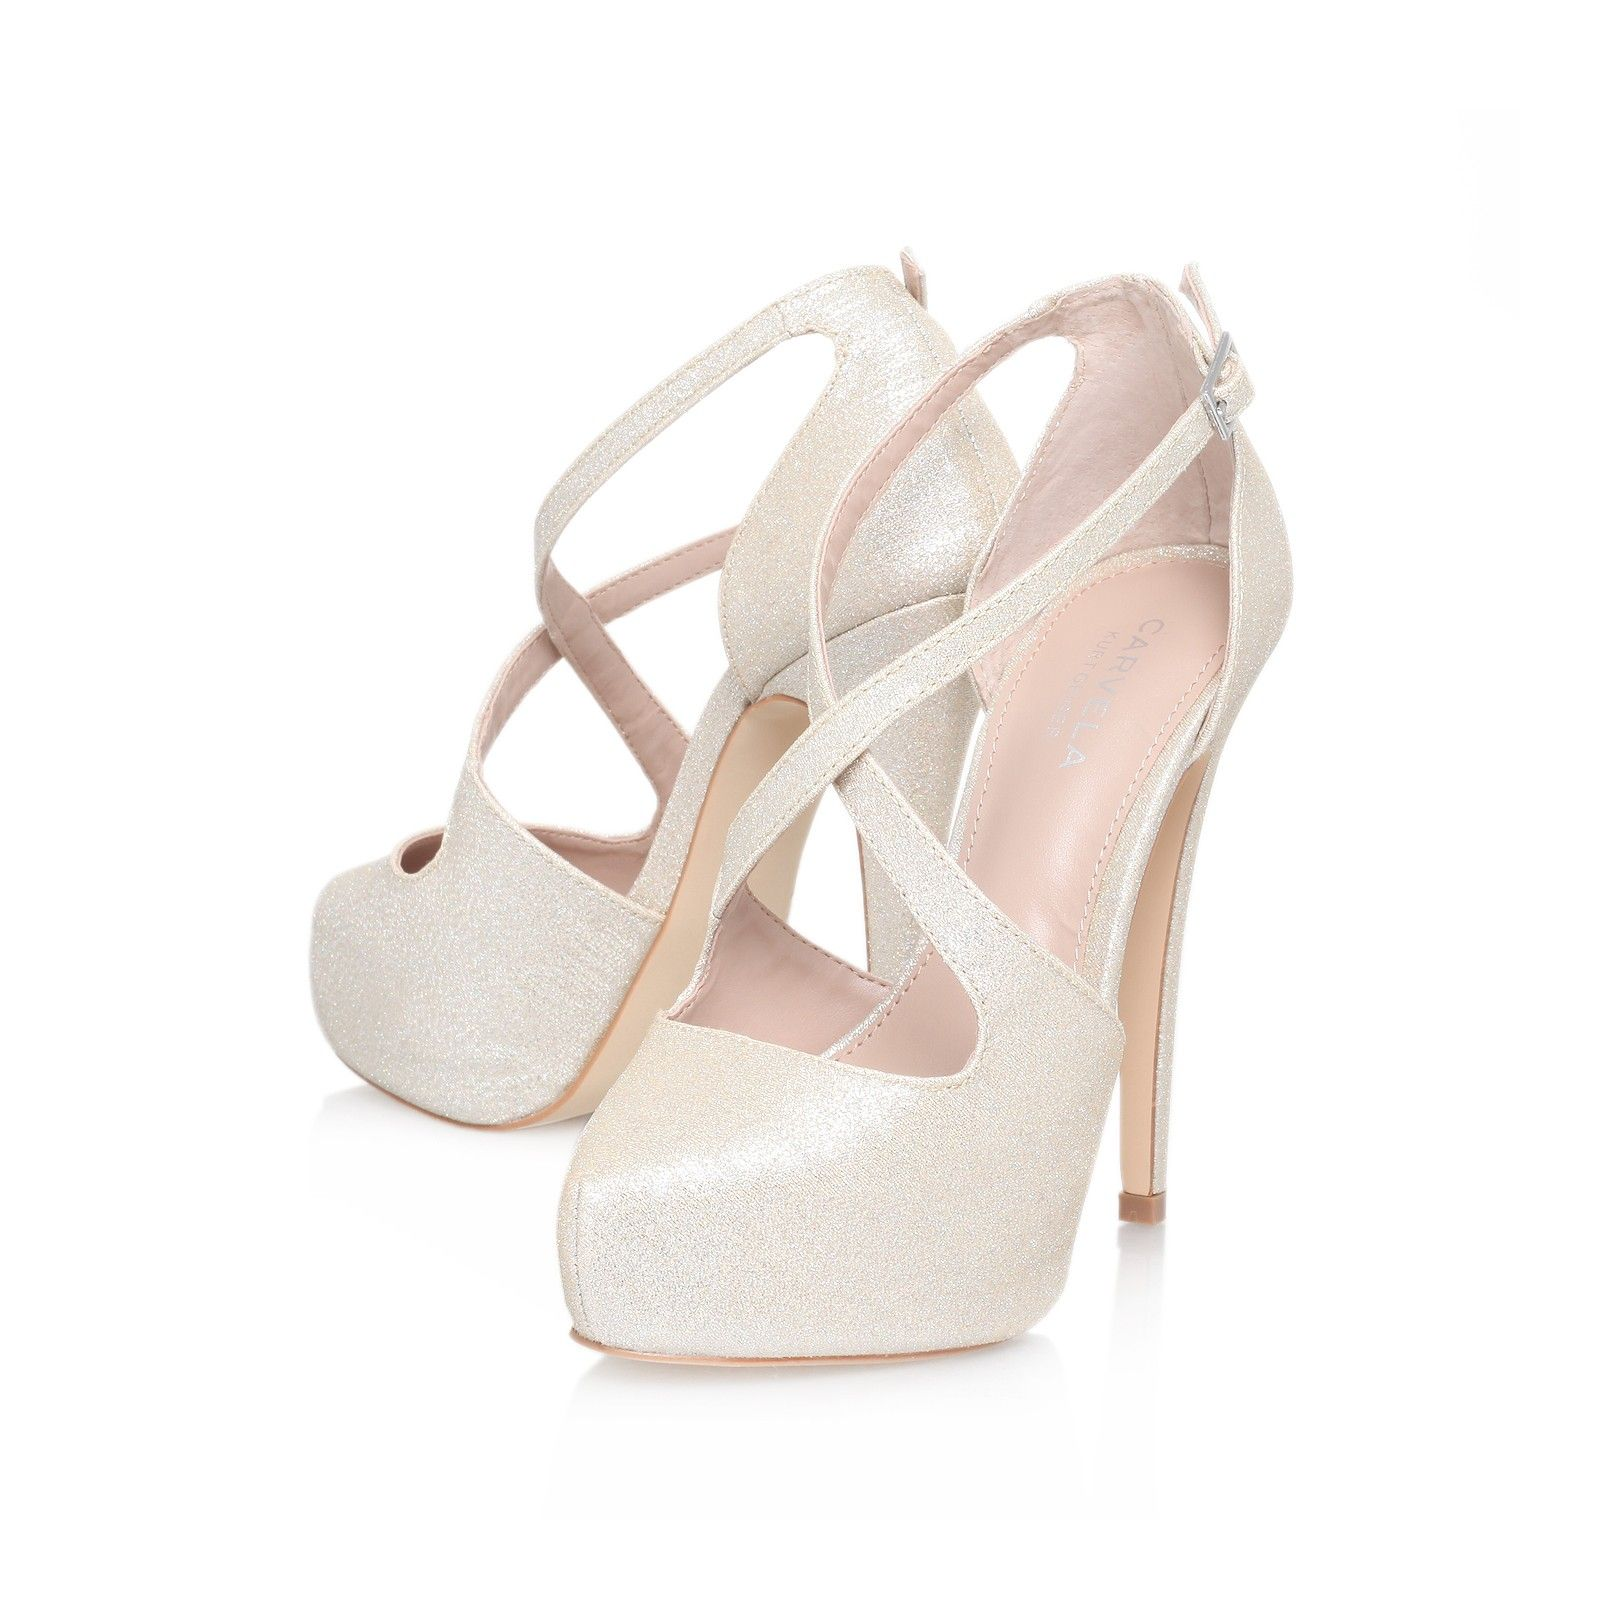 Kimchee Champagne Shoe By Carvela Kurt Geiger Women